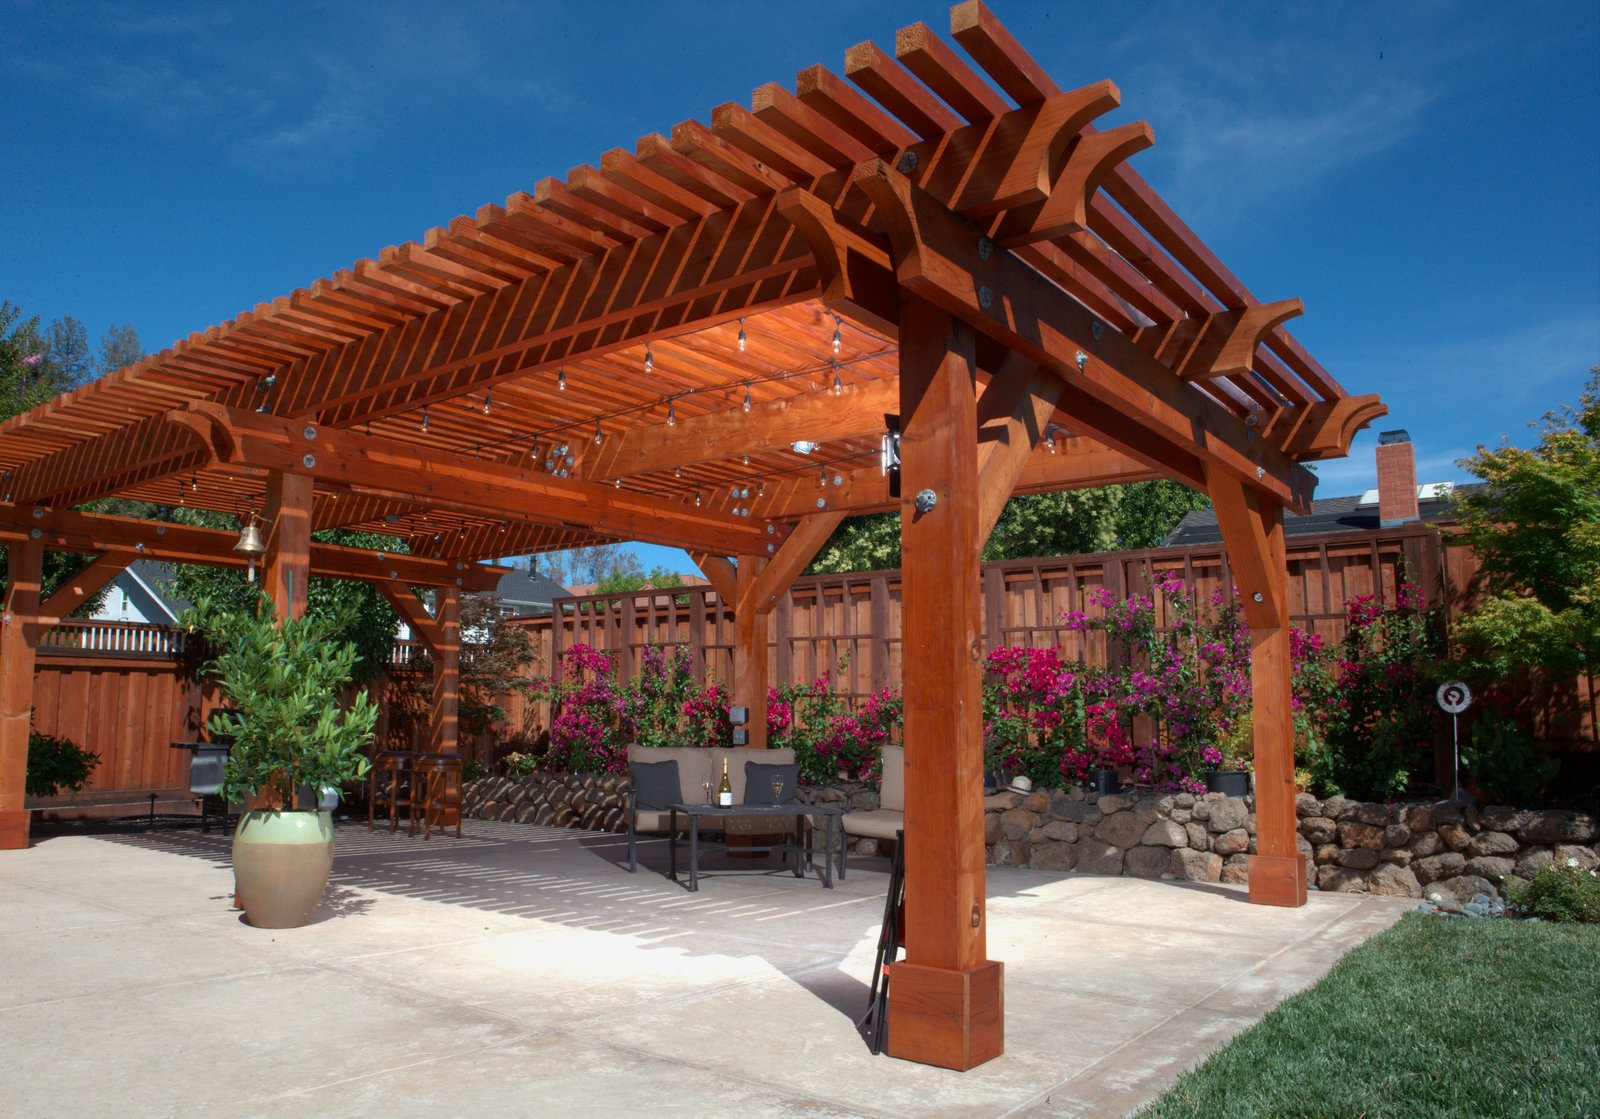 A versatile material, redwood can be left to turn a rustic, silver-tone gray, or finished to take on a glowing tint. A pergola such as this one, which will accompany Humboldt Redwood Company at Dwell on Design, can imbue your backyard space with both stateliness and charm.  Photo 7 of 7 in Beauty and Brains: Building Sustainably With Redwood